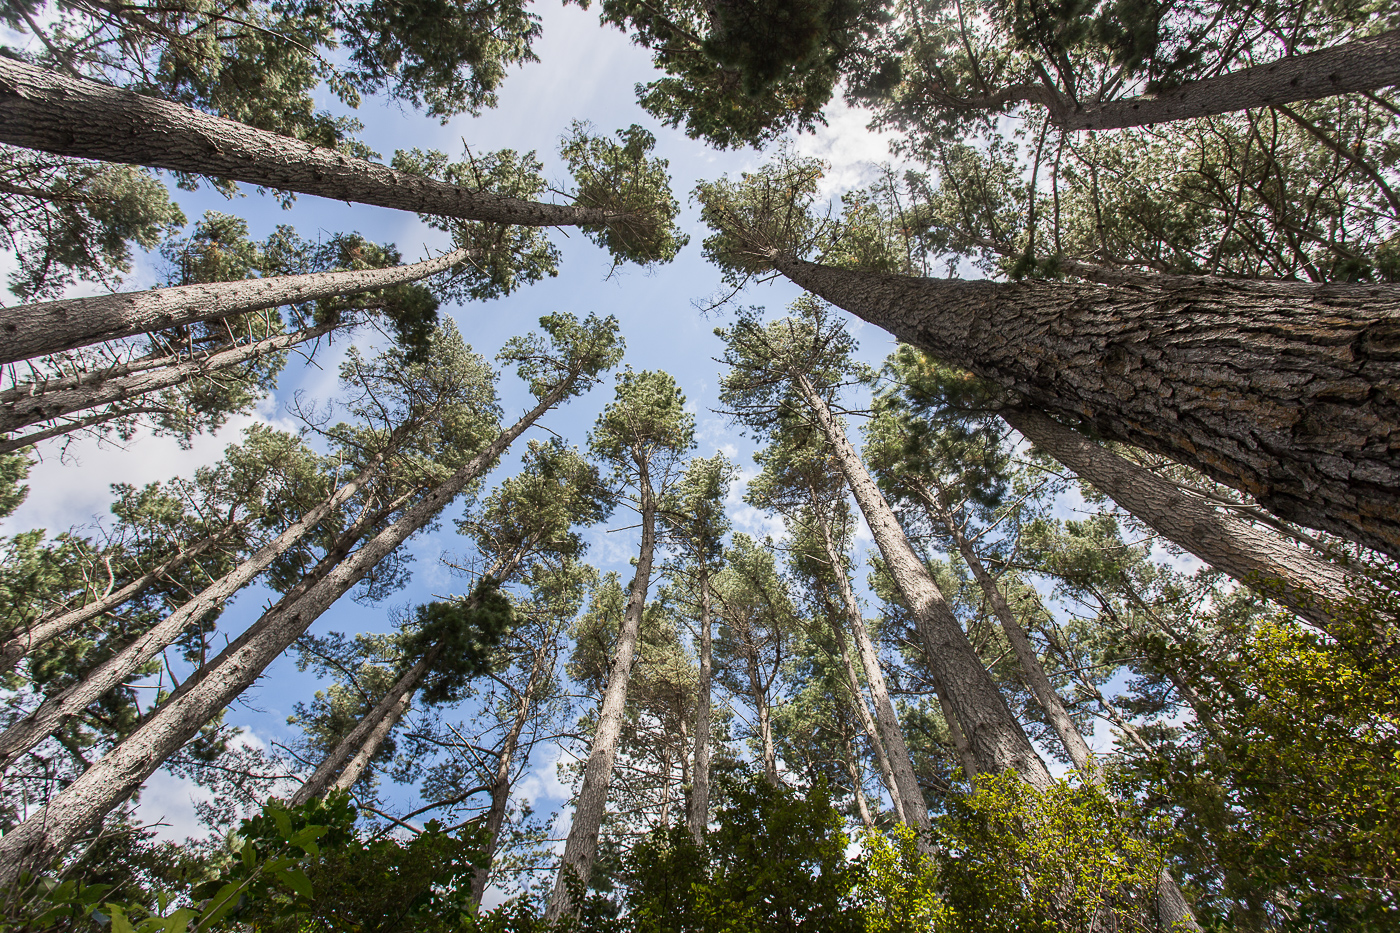 Looking up at the pine canopy